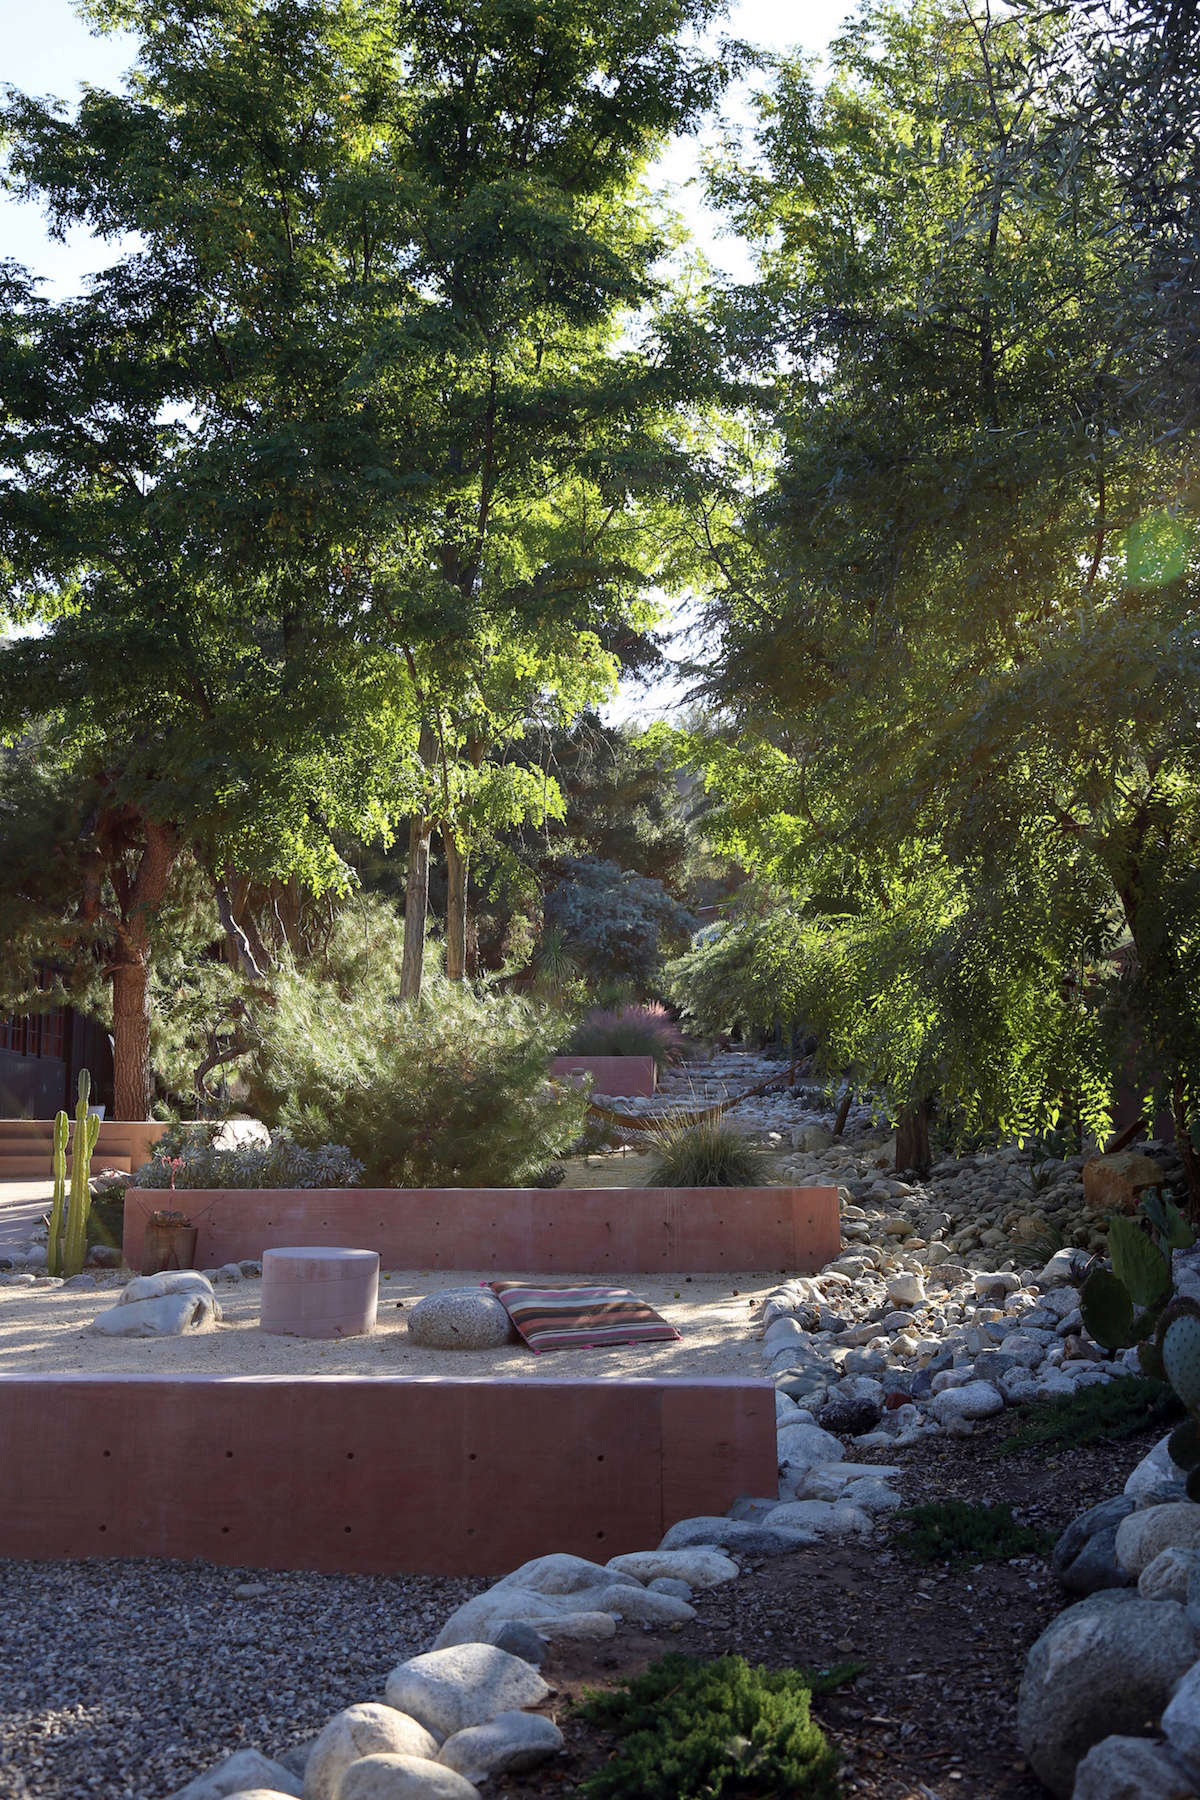 The Morgans created a rock river along one side of the garden, composed of small boulders they collected over time. The largest stones, including those used as seating around the small pink concrete table shown above, are from Southwest Boulder & Stone.